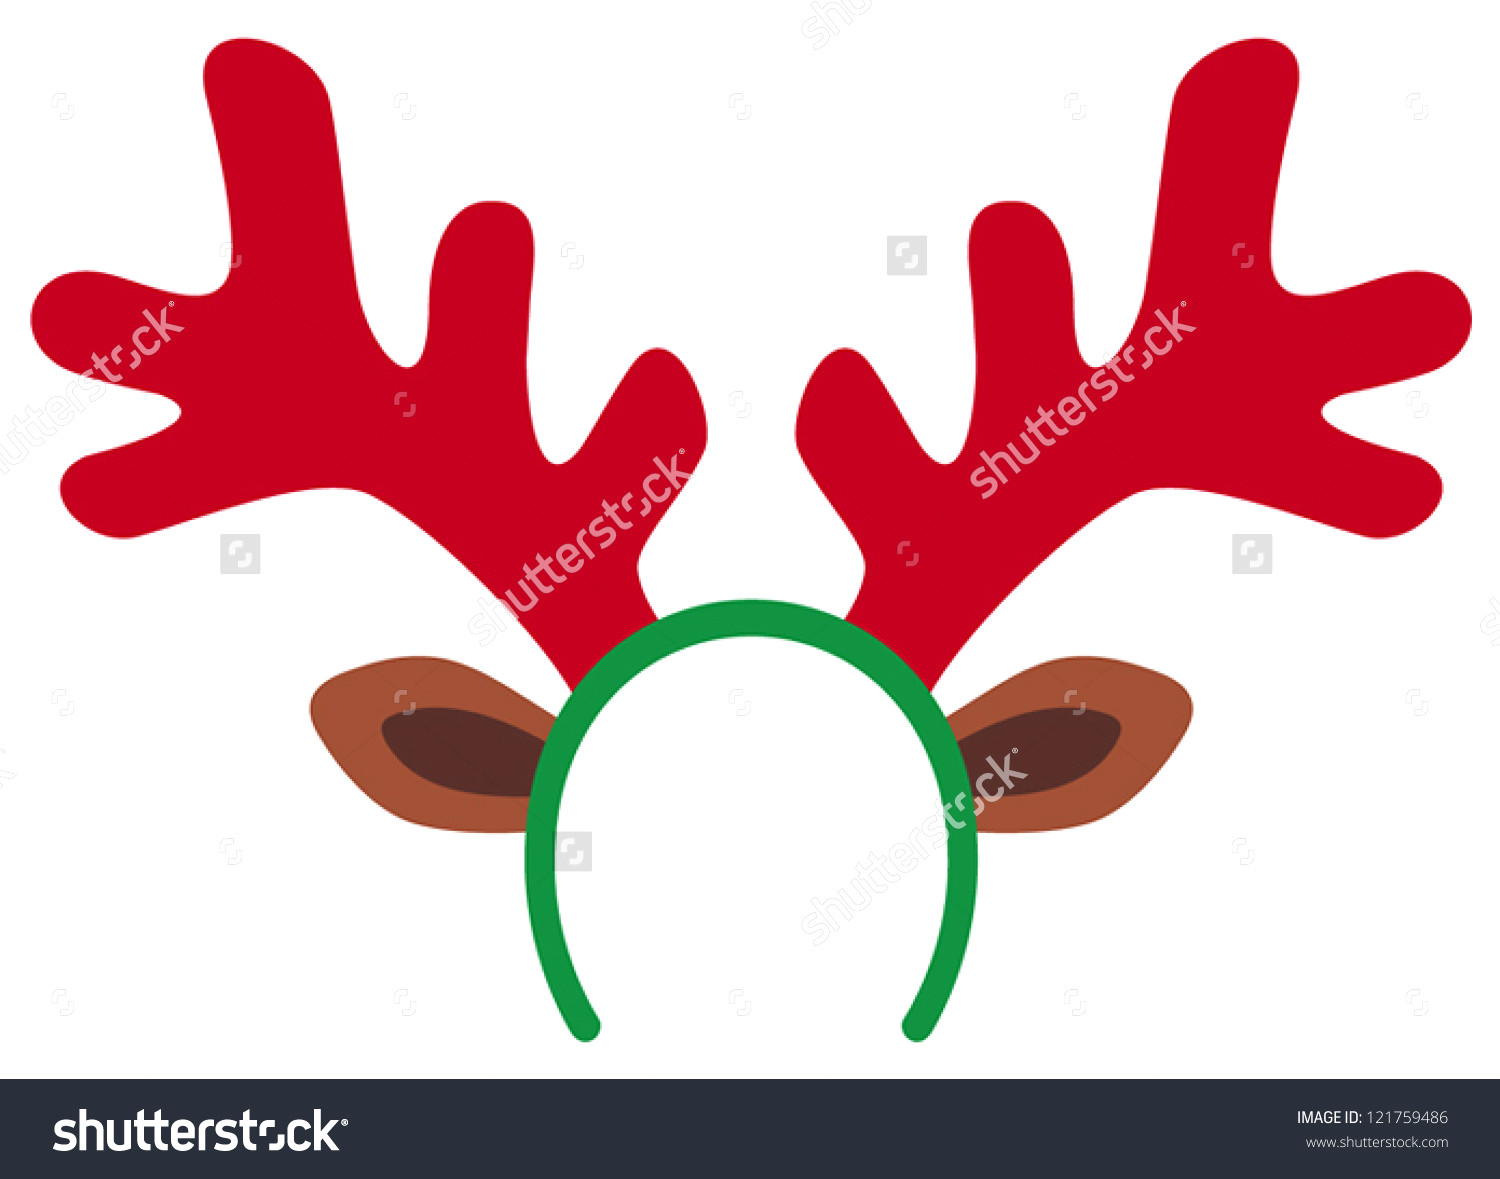 Category coloring pages rescuedesk. Antler clipart headband